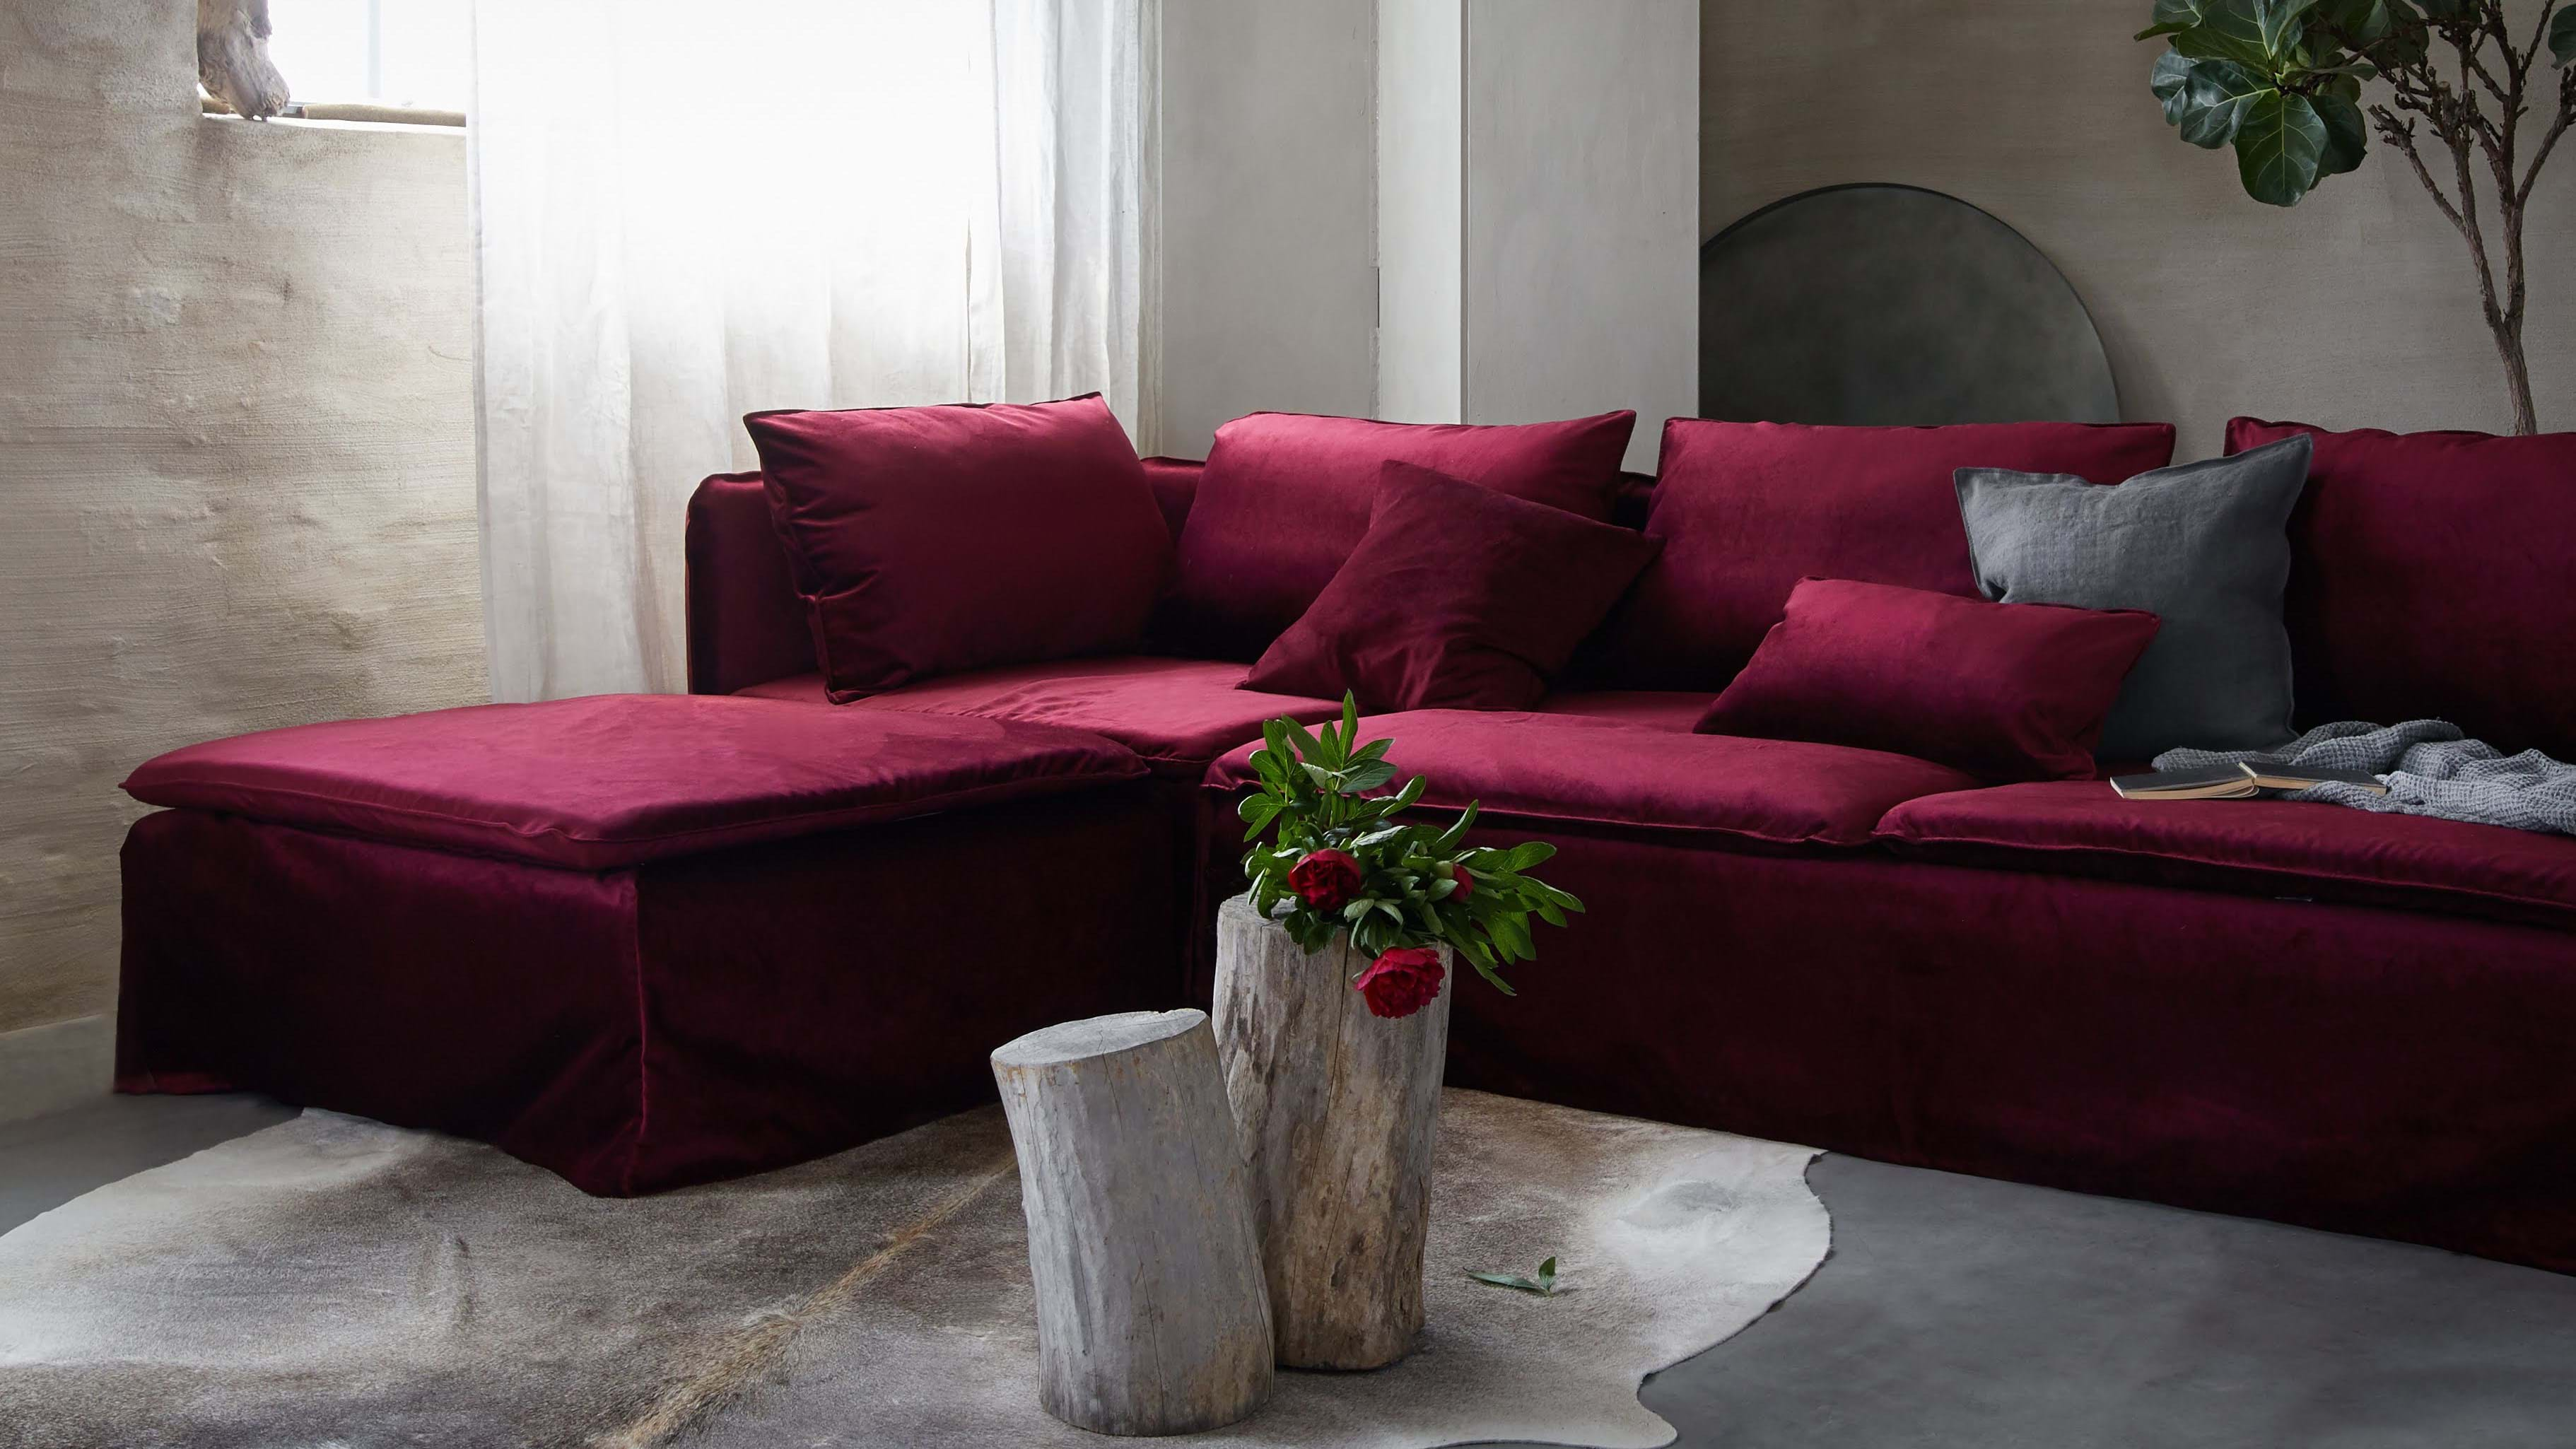 Admirable Sofa Covers For Ikea Couches Bemz Andrewgaddart Wooden Chair Designs For Living Room Andrewgaddartcom